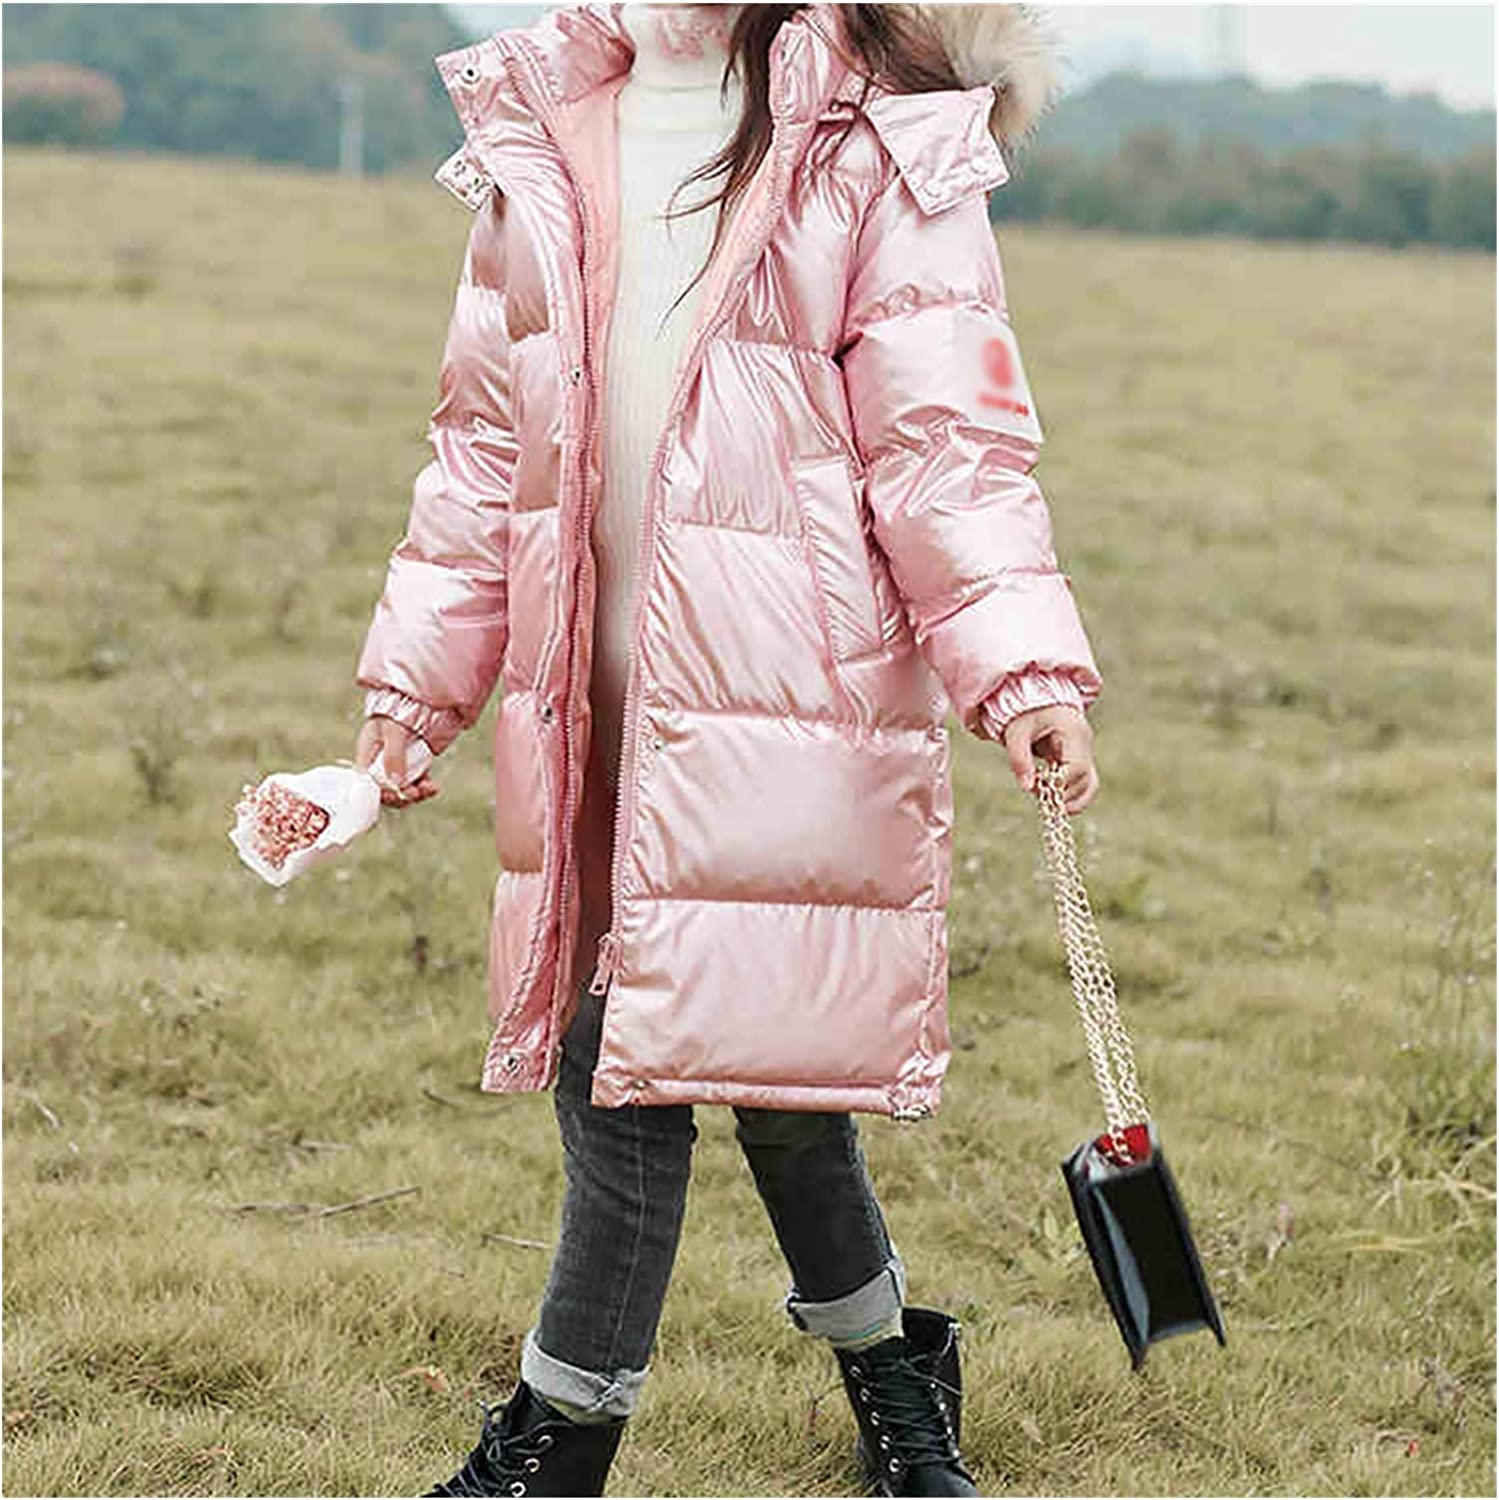 Kid Clothes Girls' Parkas Puffer Down Coat Warm Outwear Winter Thicken Zip Coat Jacket with Faux Fur Trim Hood Skin Friendly (Color : Pink, Size : Large)